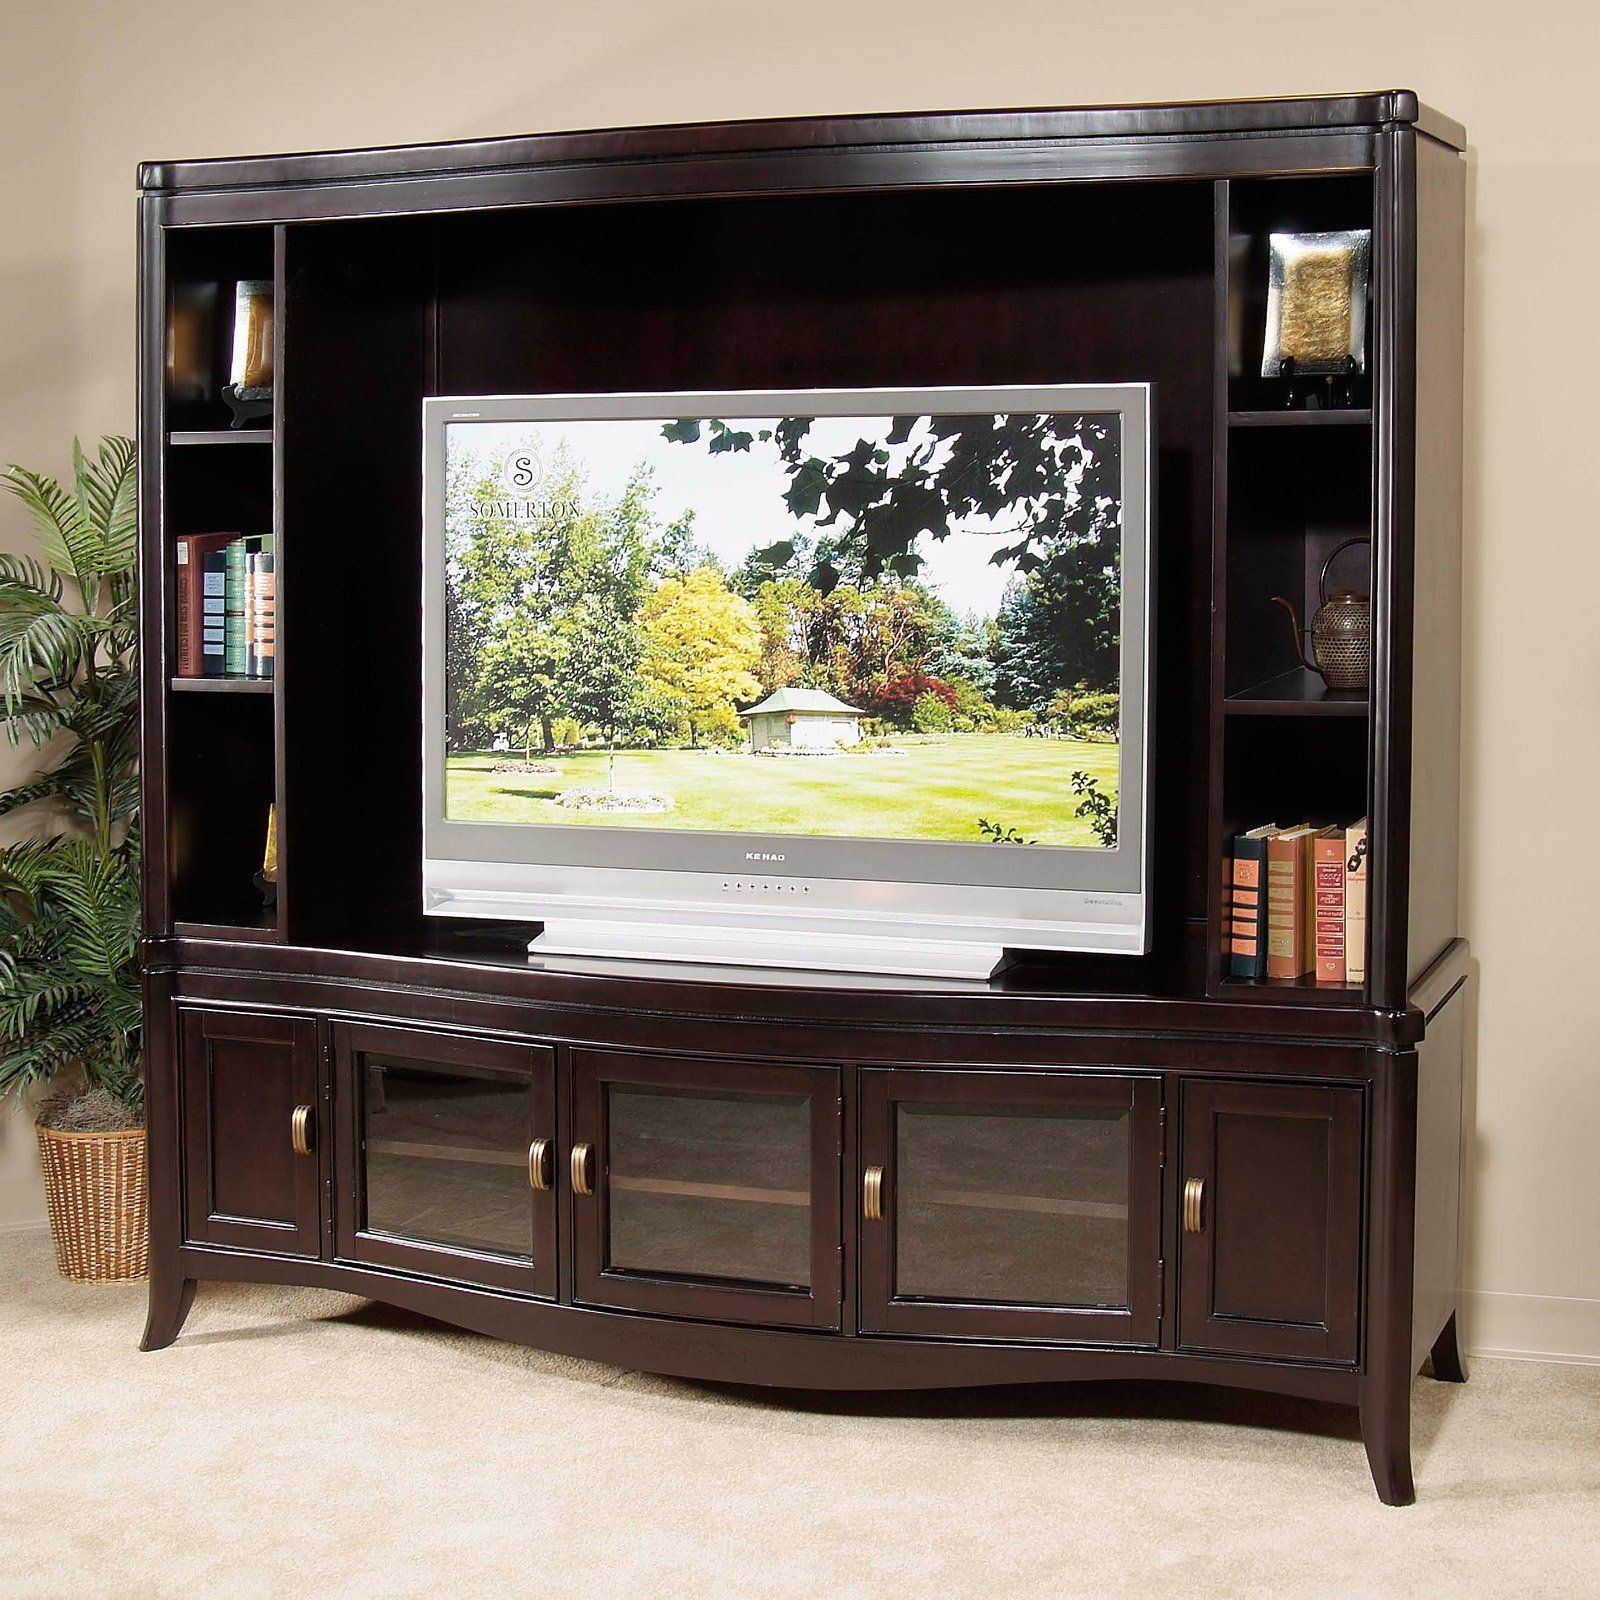 Elegant Entertainment Centers For Flat Screen Tvs 70 With Classy